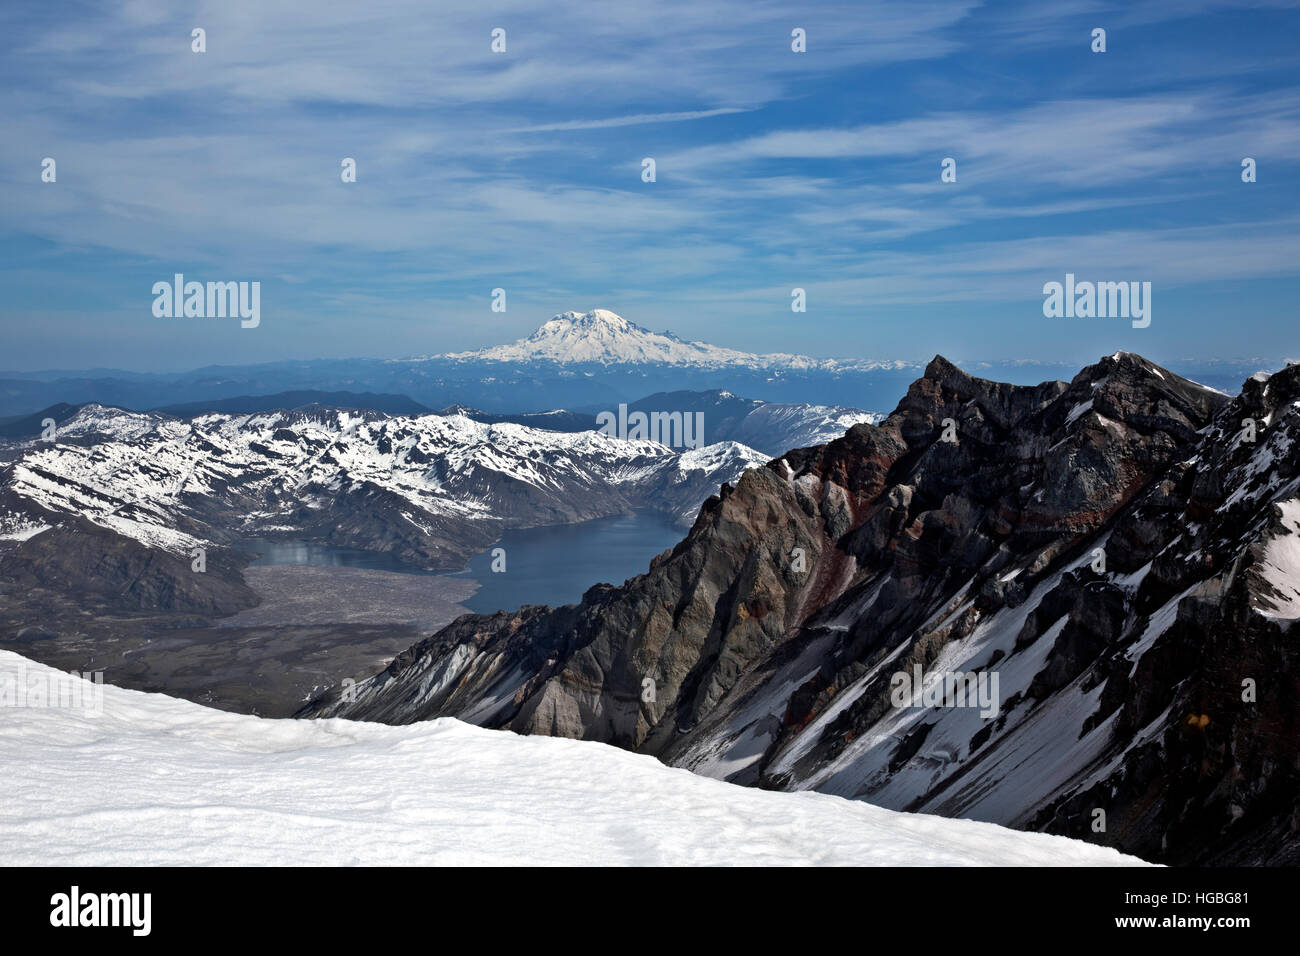 WA13129-00...WASHINGTON - View of Spirit Lake and Mount Rainier from the crater rim of Mount St. Helens. - Stock Image